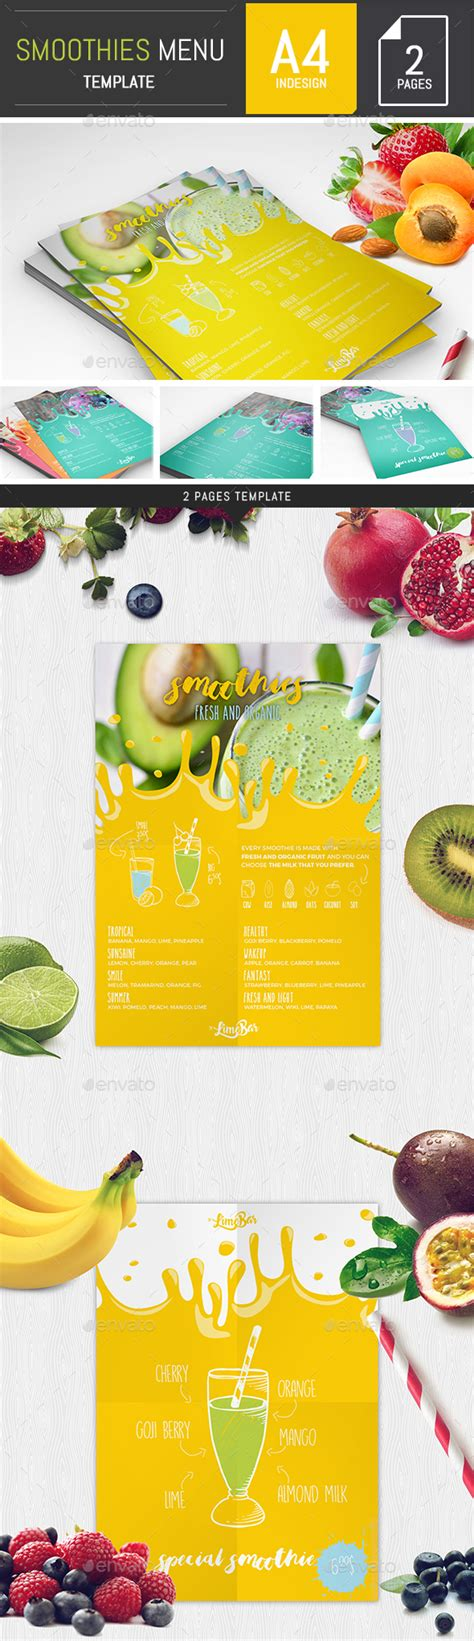 Smoothies Menu Template By Dogmadesign Graphicriver Smoothie Website Template